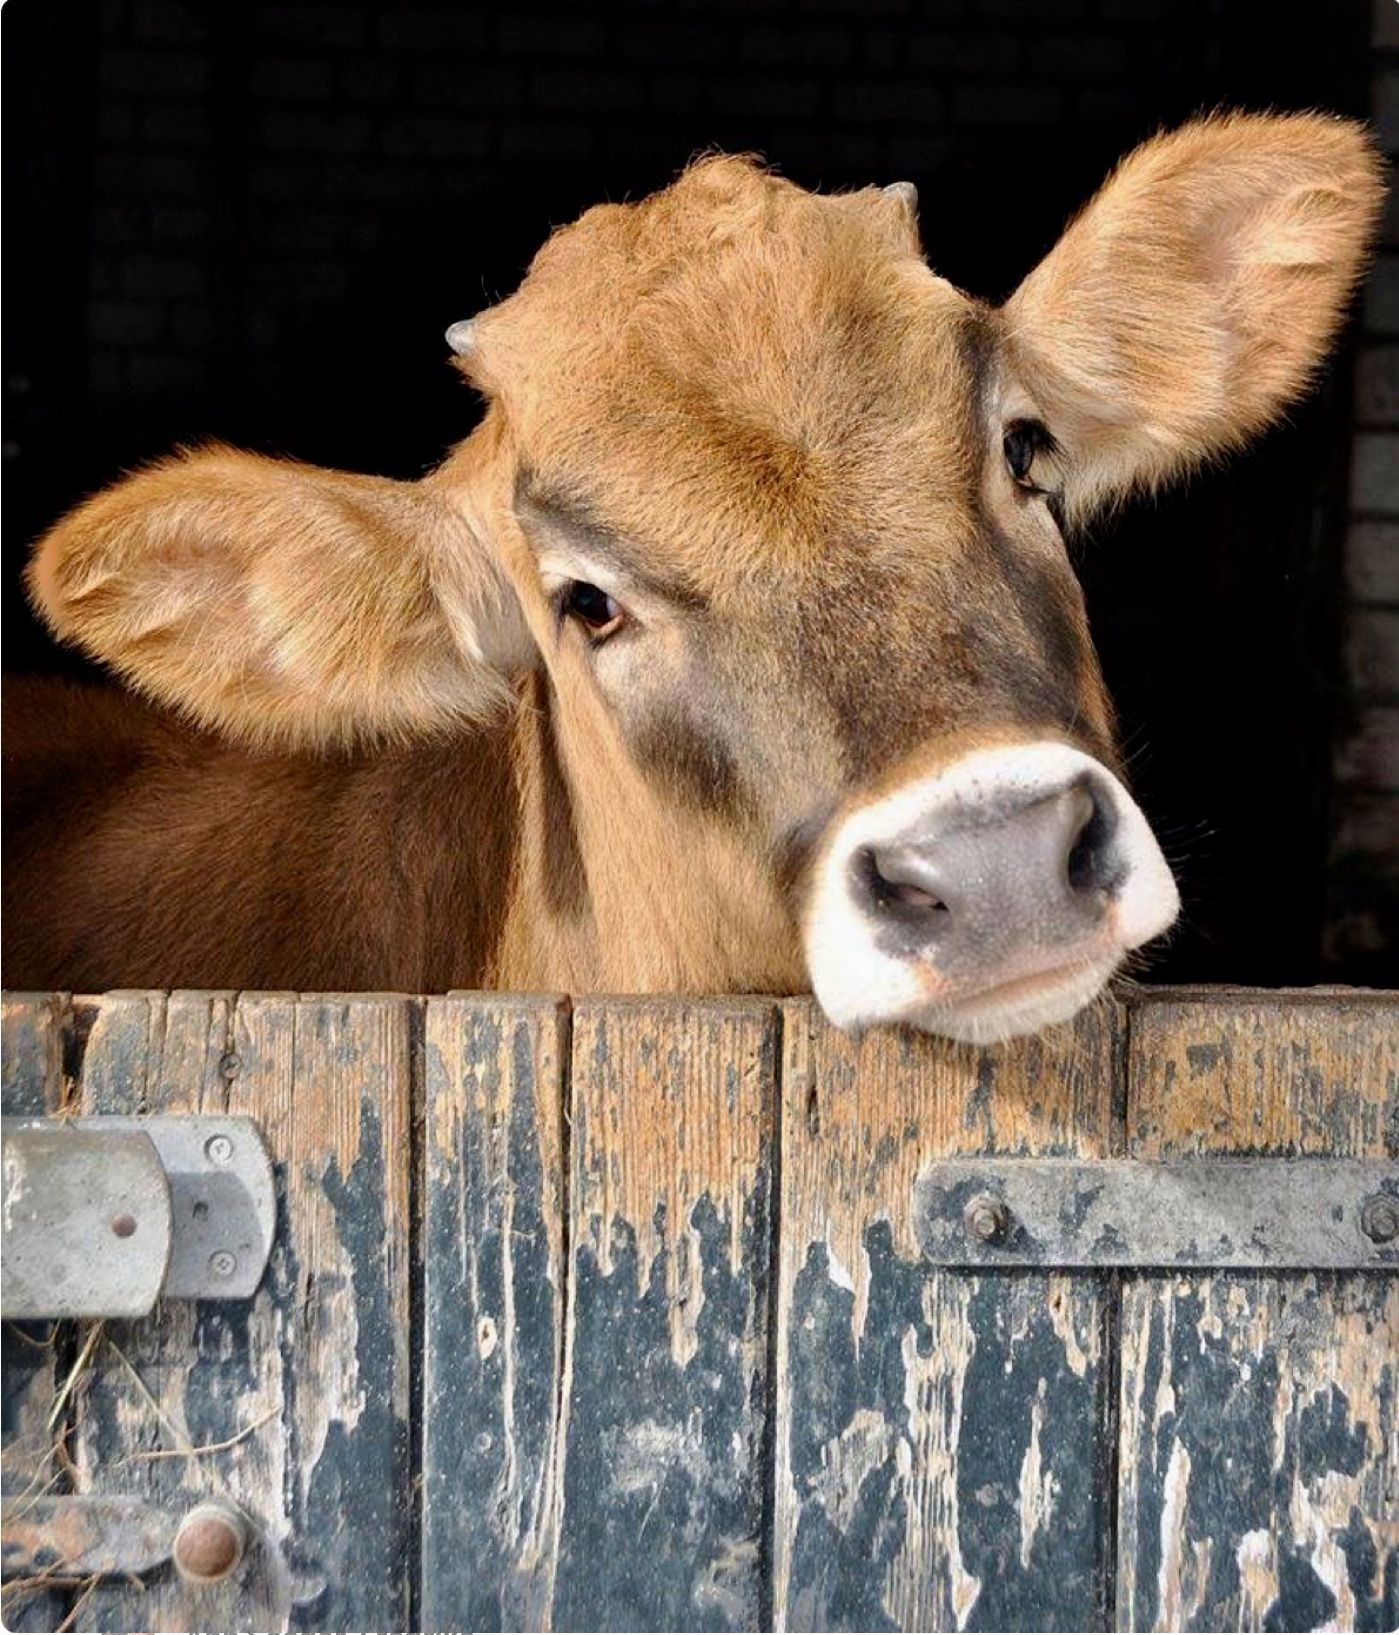 Curious Jersey cow looking over her stall door. What a